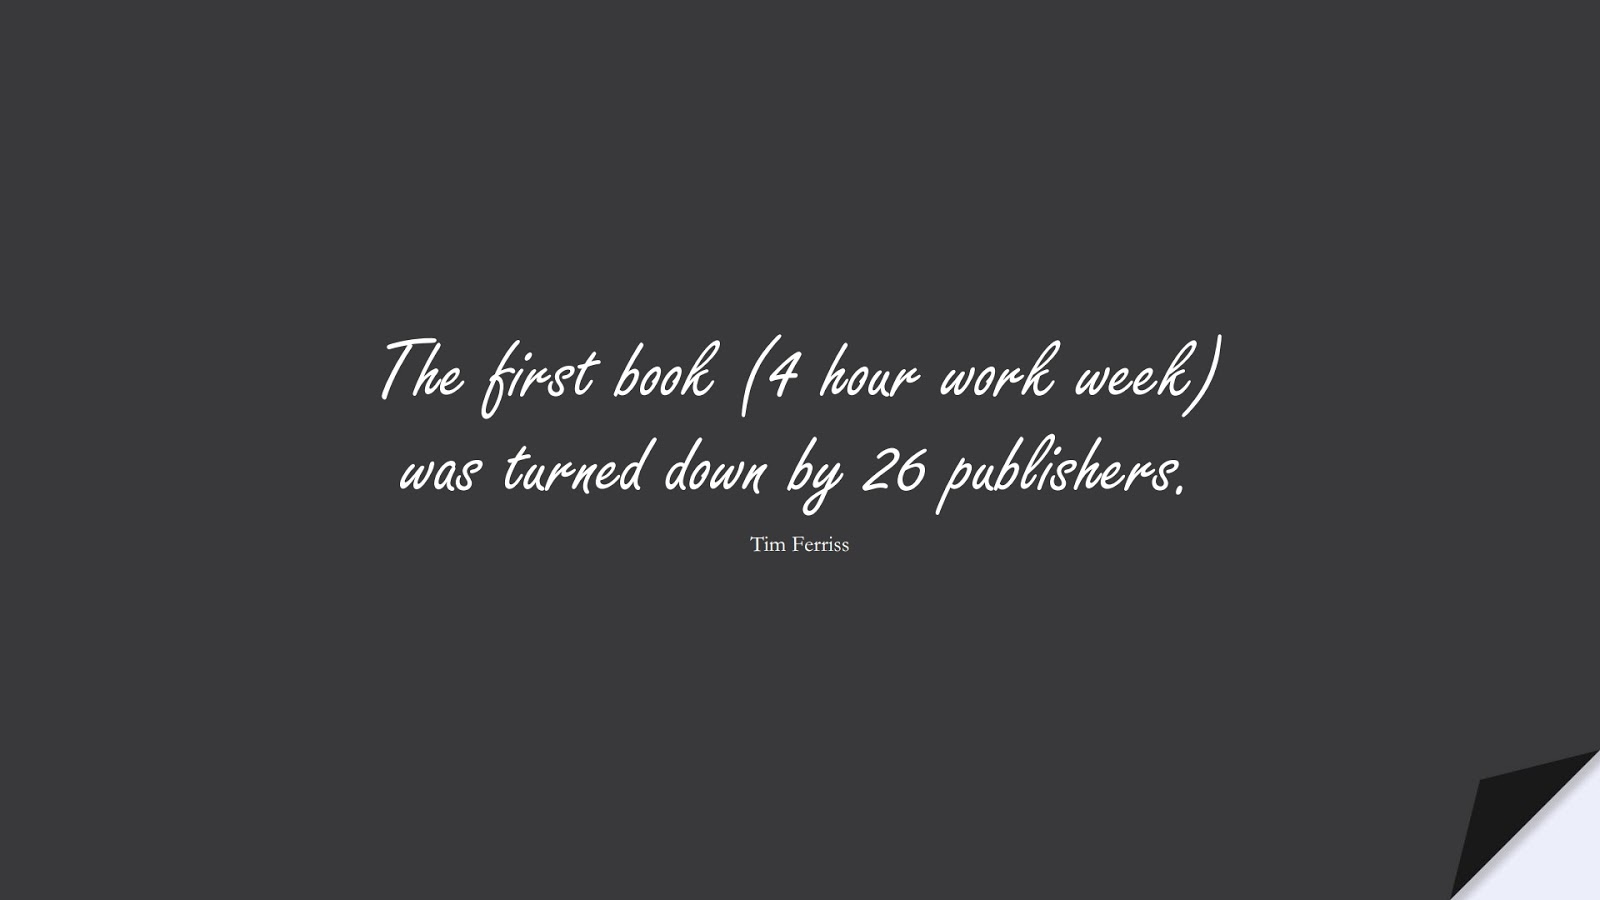 The first book (4 hour work week) was turned down by 26 publishers. (Tim Ferriss);  #TimFerrissQuotes